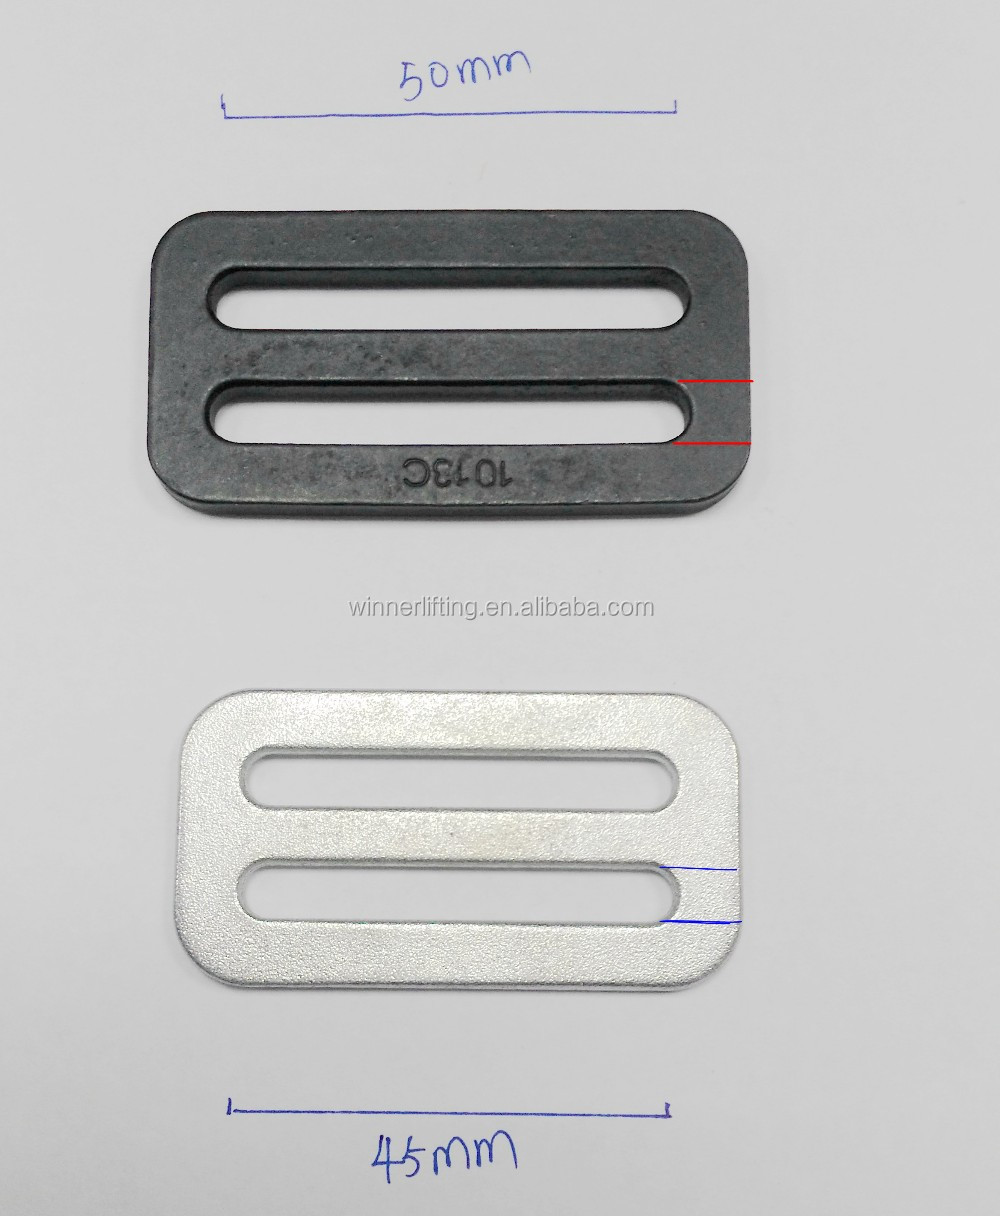 Outdoor Adjustable Metal Safety Buckles for Climbing, Lifting, Connectcing